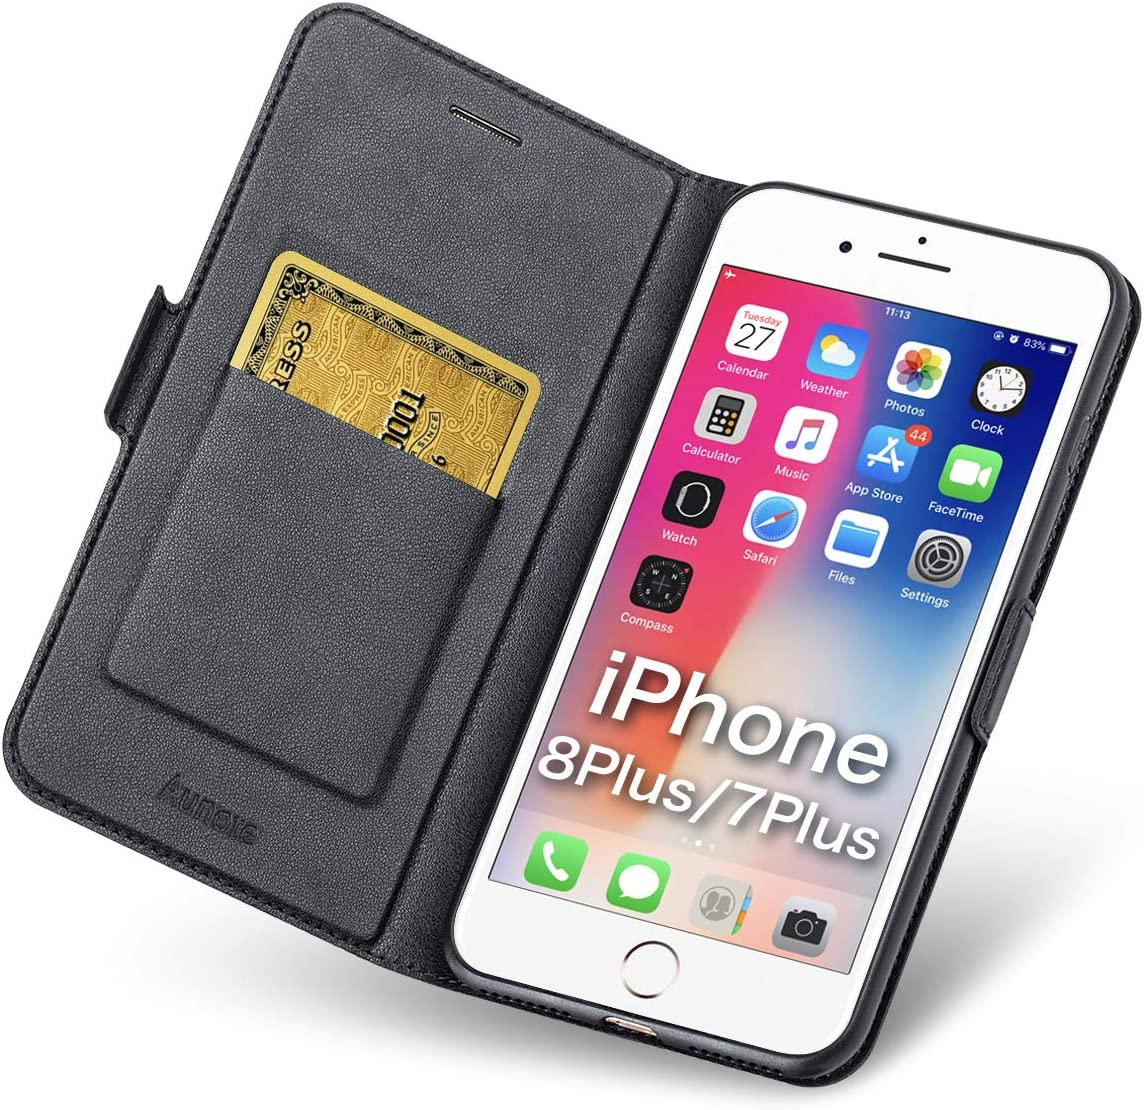 Aunote iPhone 7 Plus/8 Plus Wallet Case, iPhone 7Plus/8Plus Phone Case, Slim Flip/Folio Cover – Book Style: Made of PU Leather Shell (Lightweight, Feels Good) and TPU Inner - Full Protection. Black